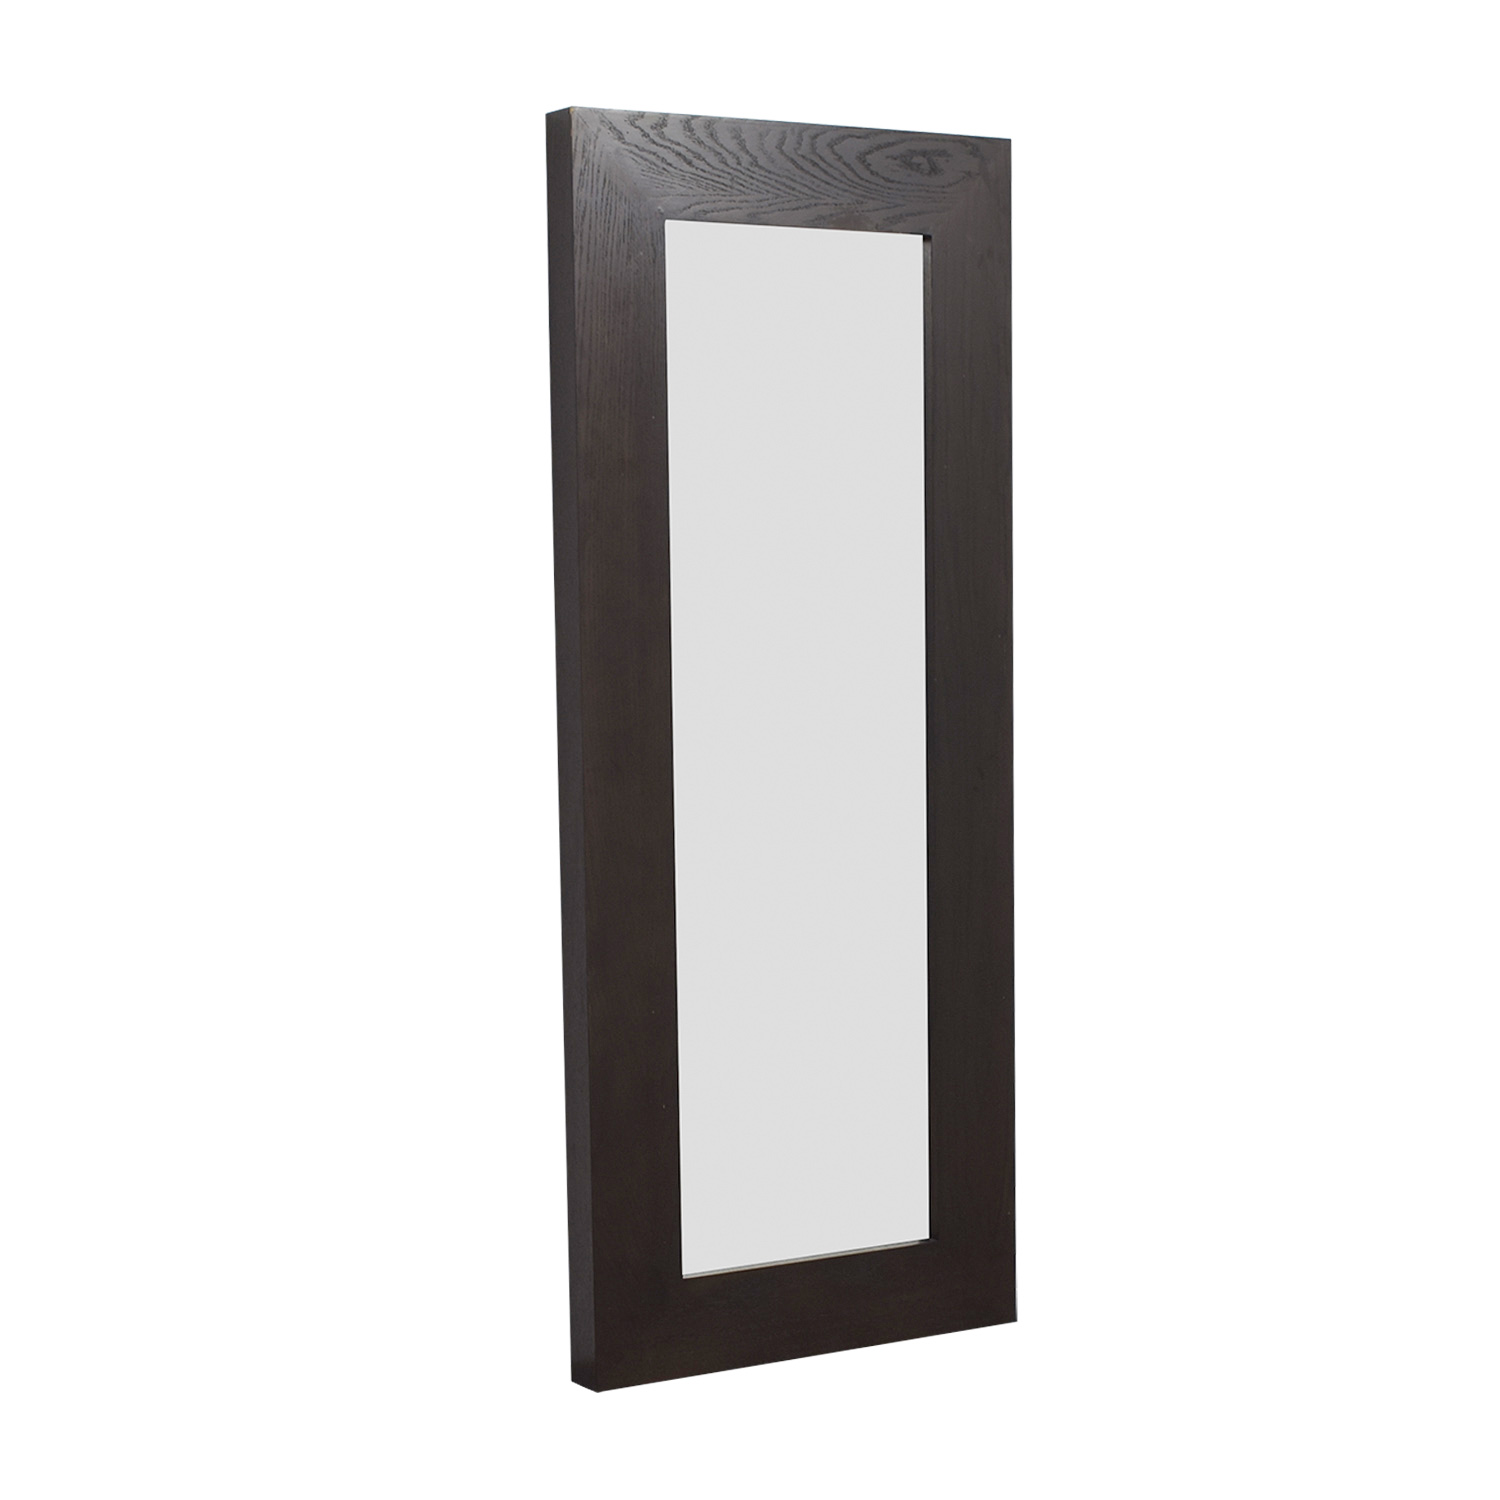 West Elm West Elm Rectangle Mirror dimensions